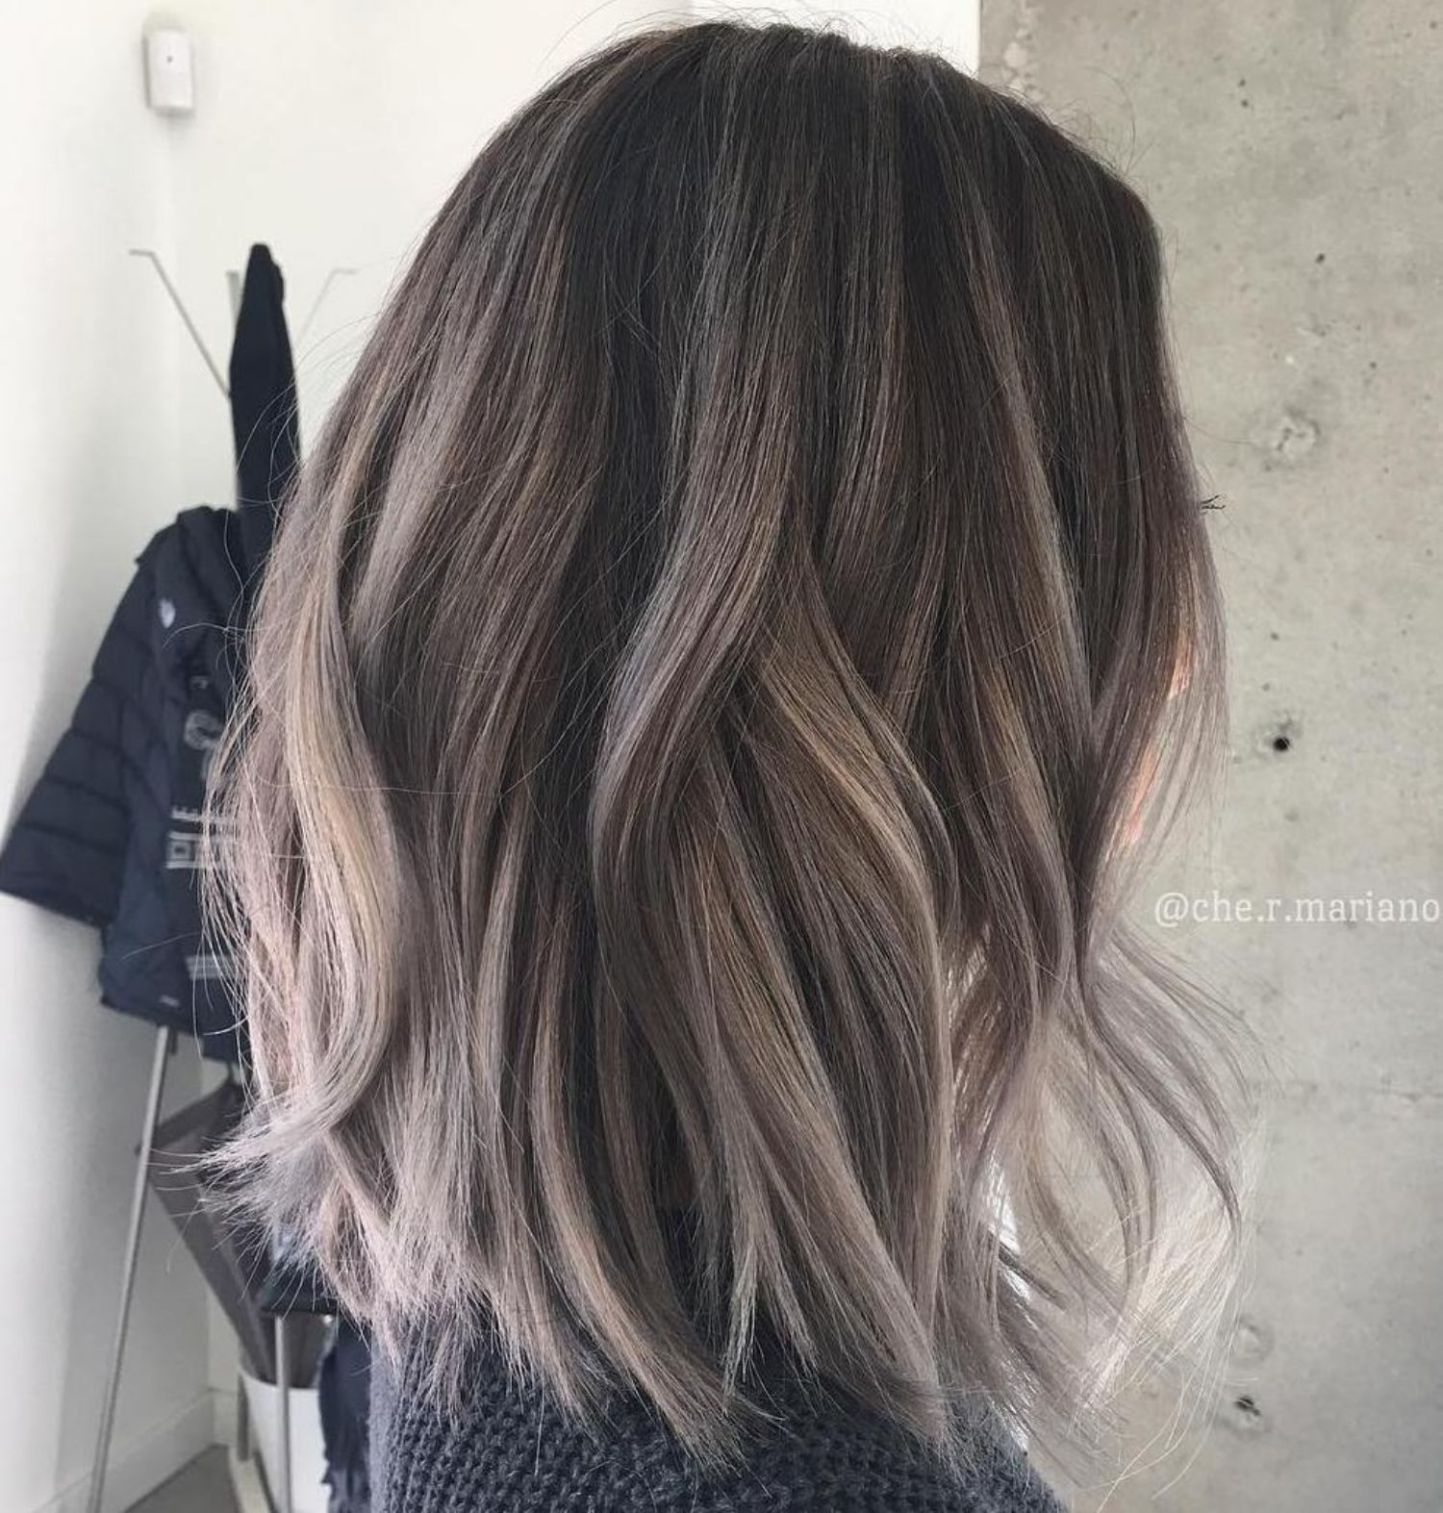 60 Shades Of Grey Silver And White Highlights For Eternal Youth Gray Balayage Thick Hair Styles Grey Ombre Hair